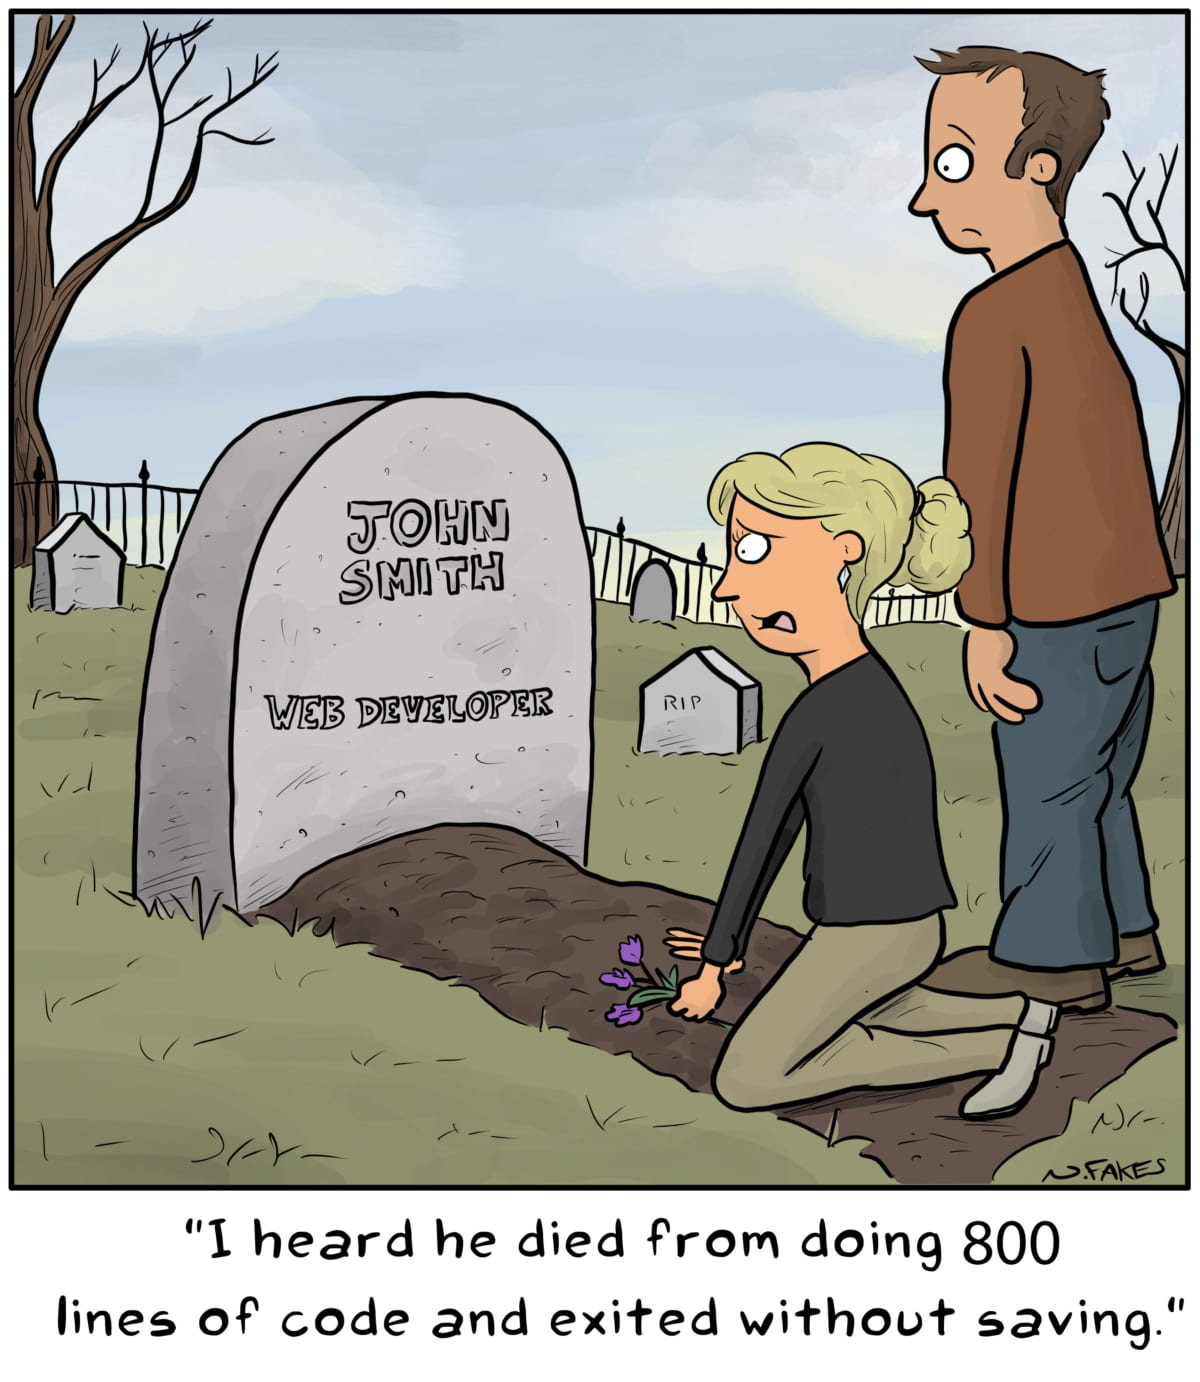 A cartoon of a grave and a woman stating he died from doing 800 lines of code without saving.